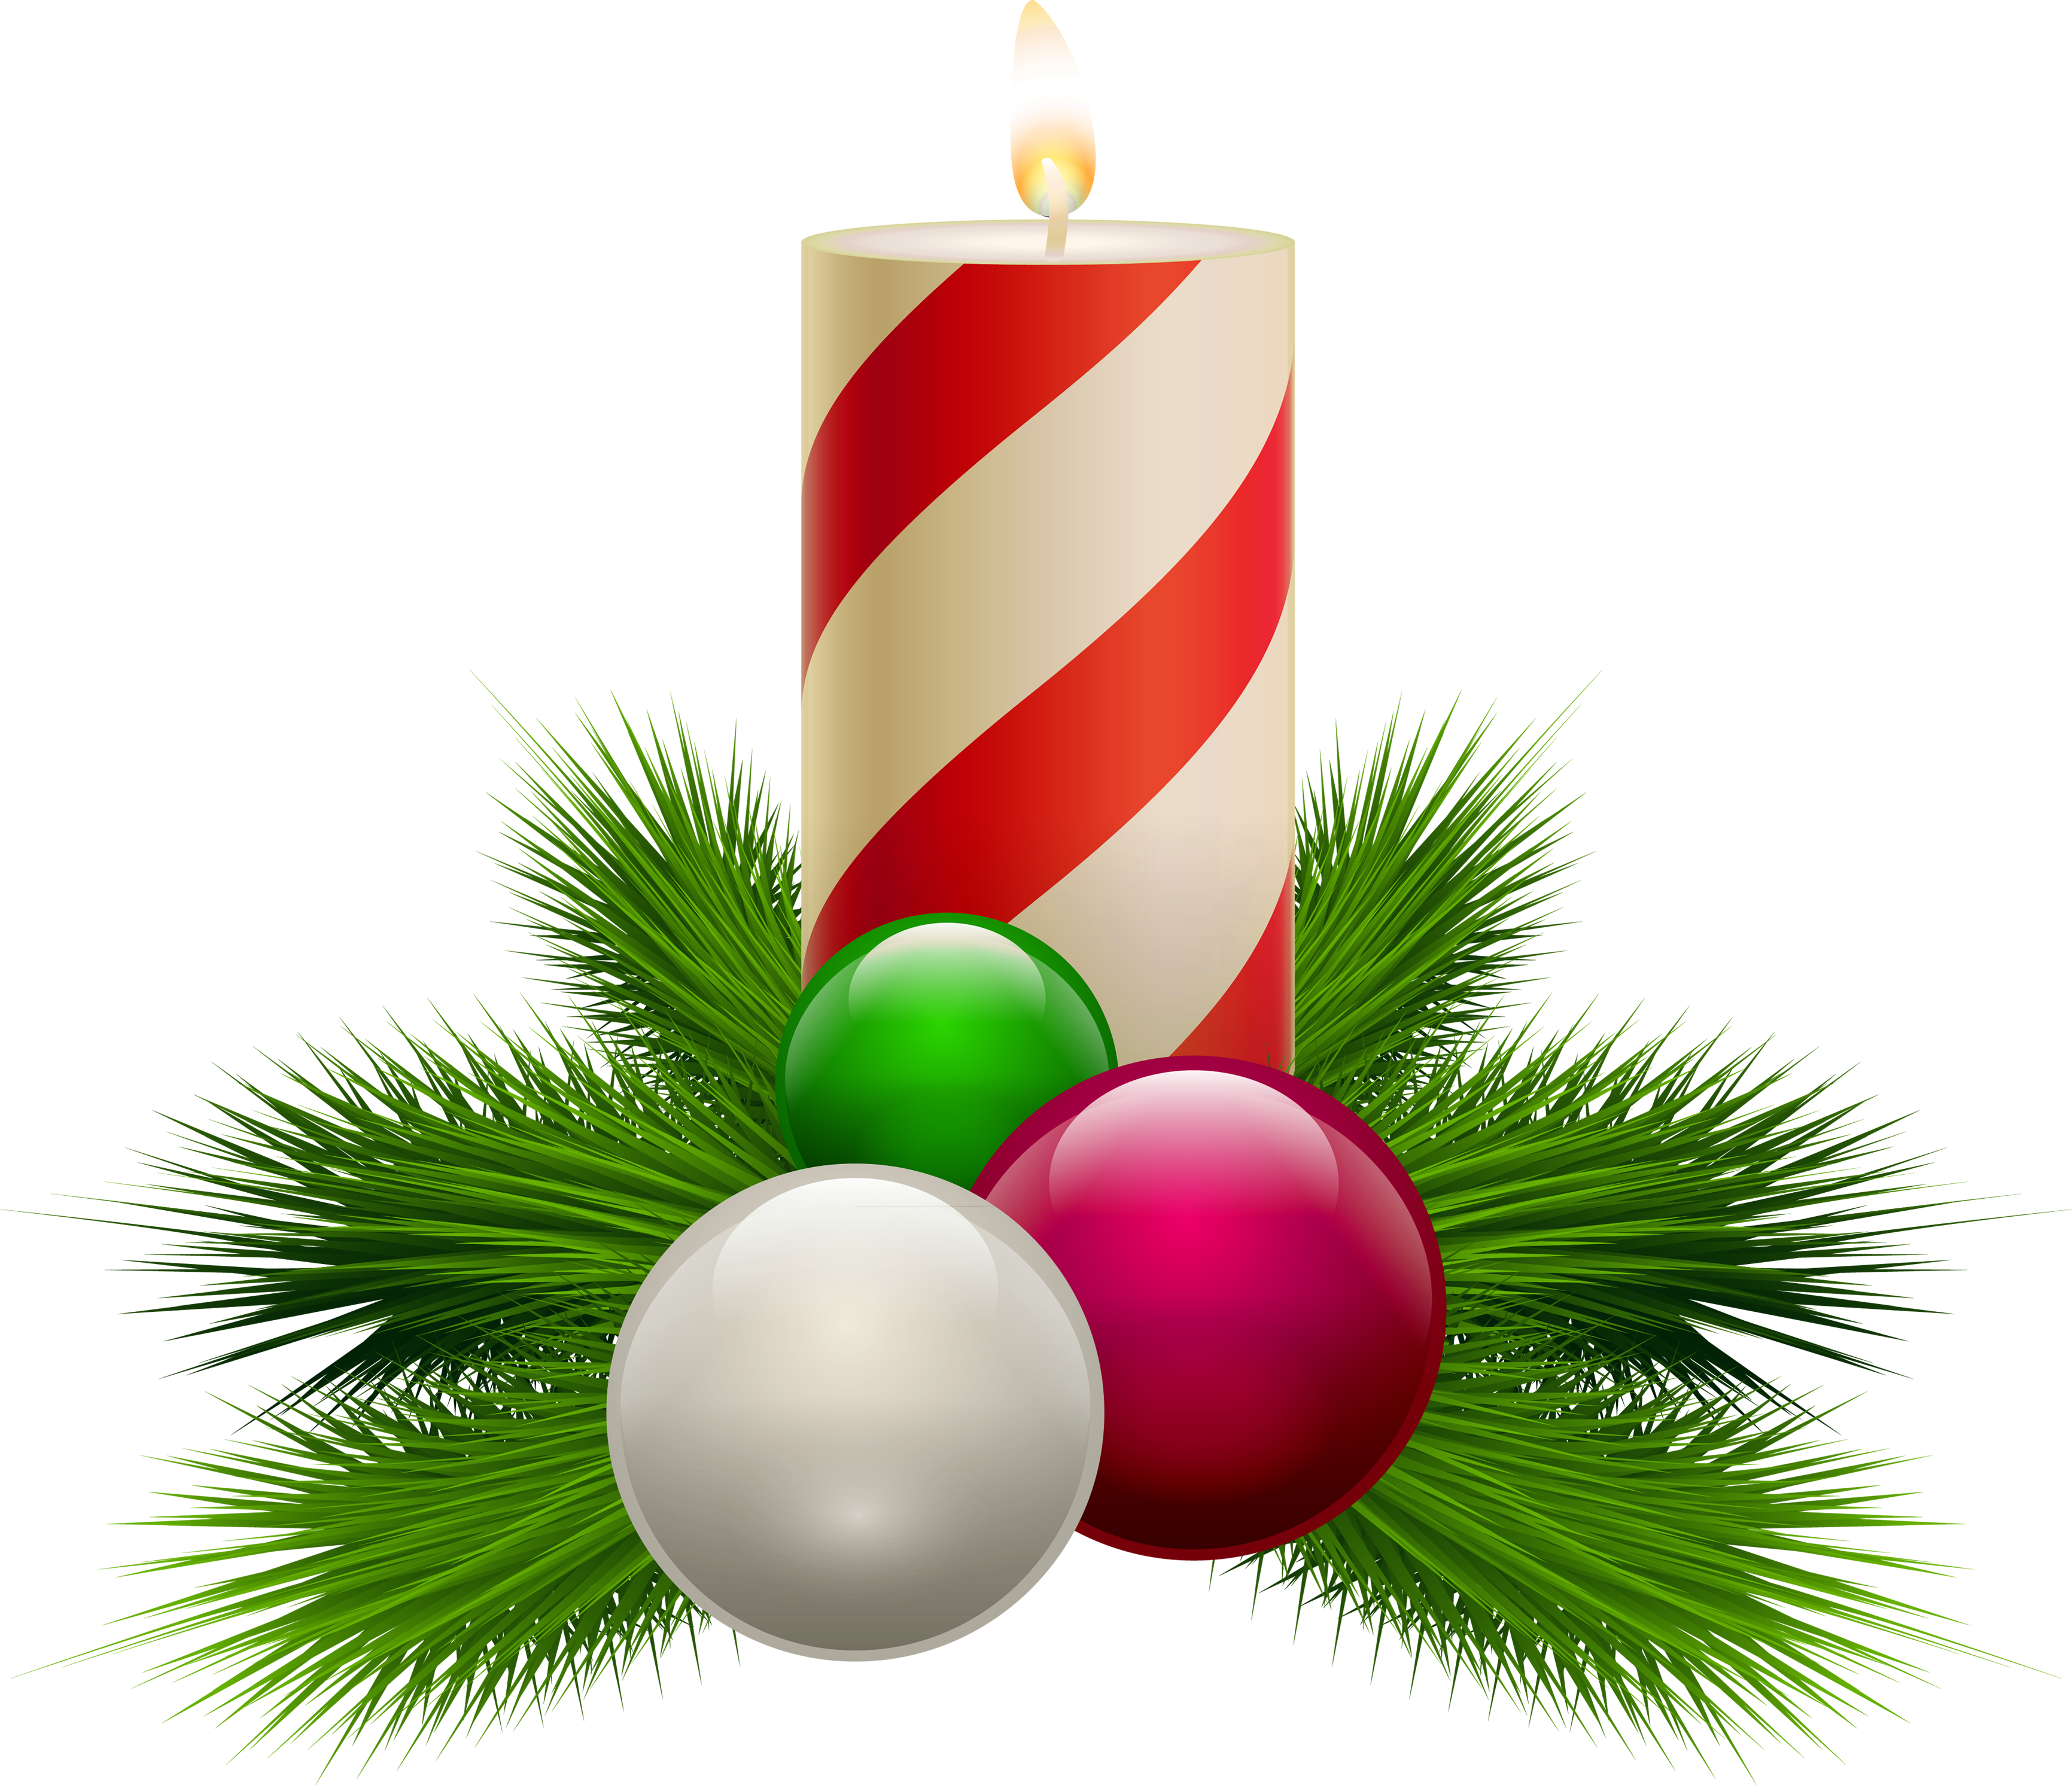 Christmas candle clipart black and white image library Candles PNG images free download, candle PNG image image library